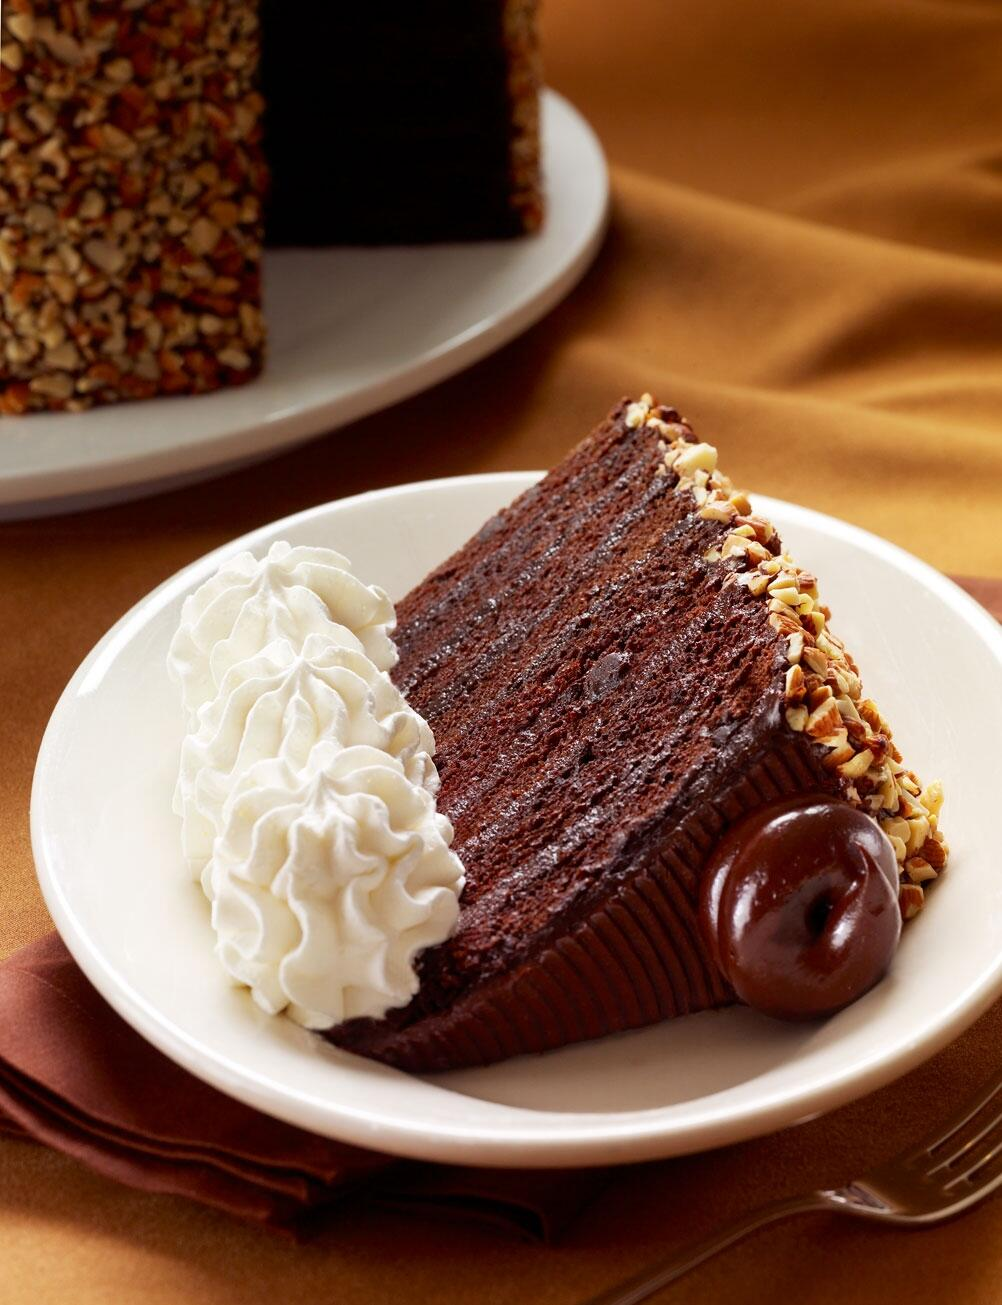 """""""The 12-step chocoholics program: Never be more than 12 steps away from chocolate!"""" ~Terry Moore http://t.co/3H8z5B3Ard"""